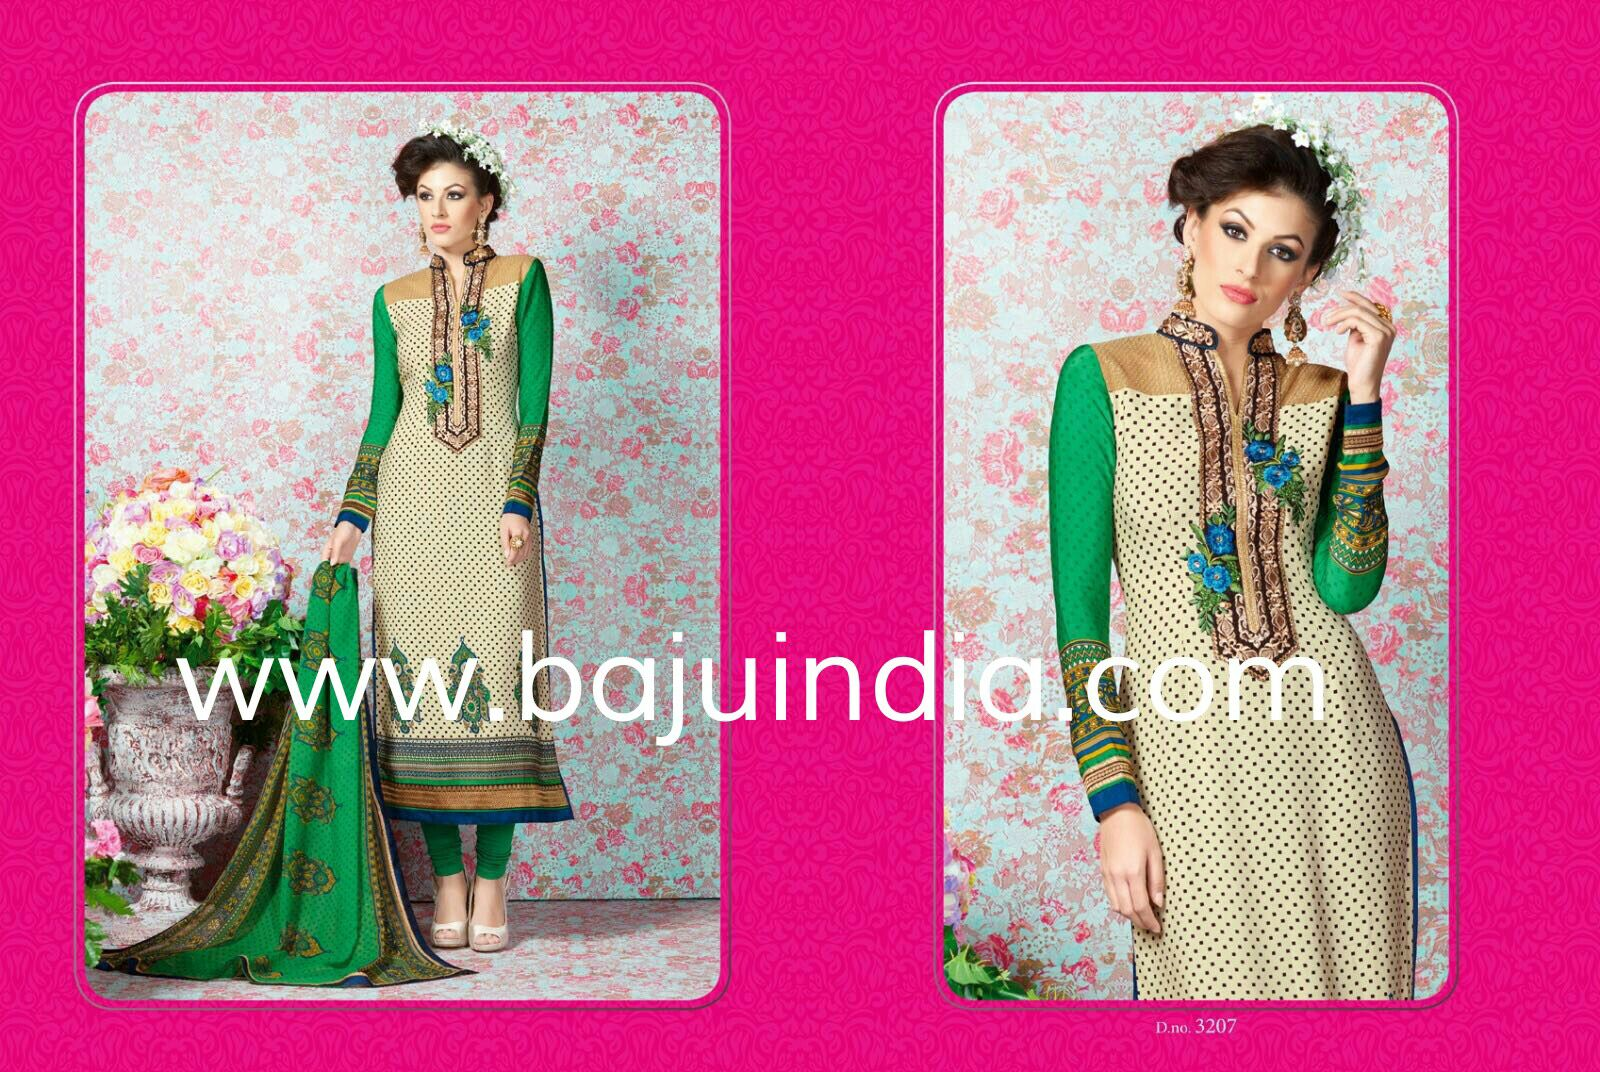 Baju India Muslim - Baju India Modern - Baju Khas India - Baju Adat India - Sari India Terbaru - Sari India Muslim - Baju Kerajaan India - Baju Salwaar India – D.NO.3207